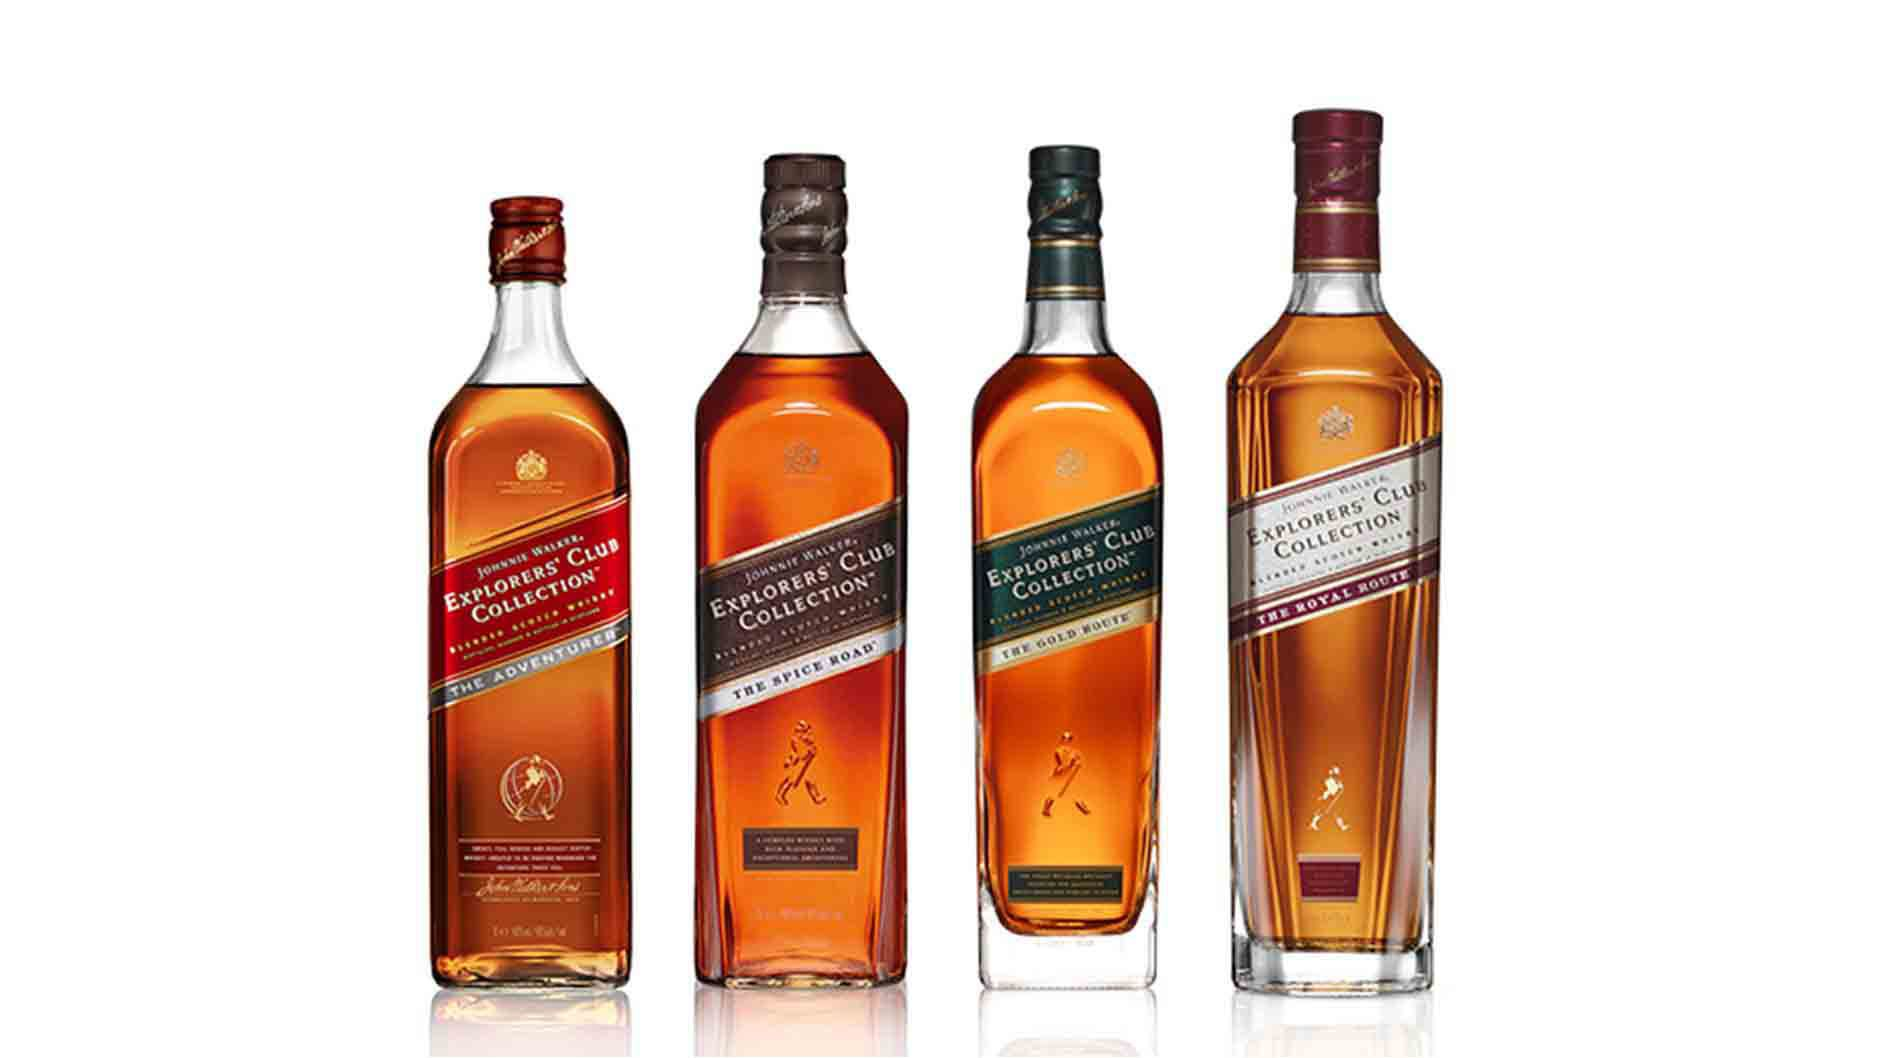 Bottles of Johnnie Walker Explorers' Club Collection whisky range